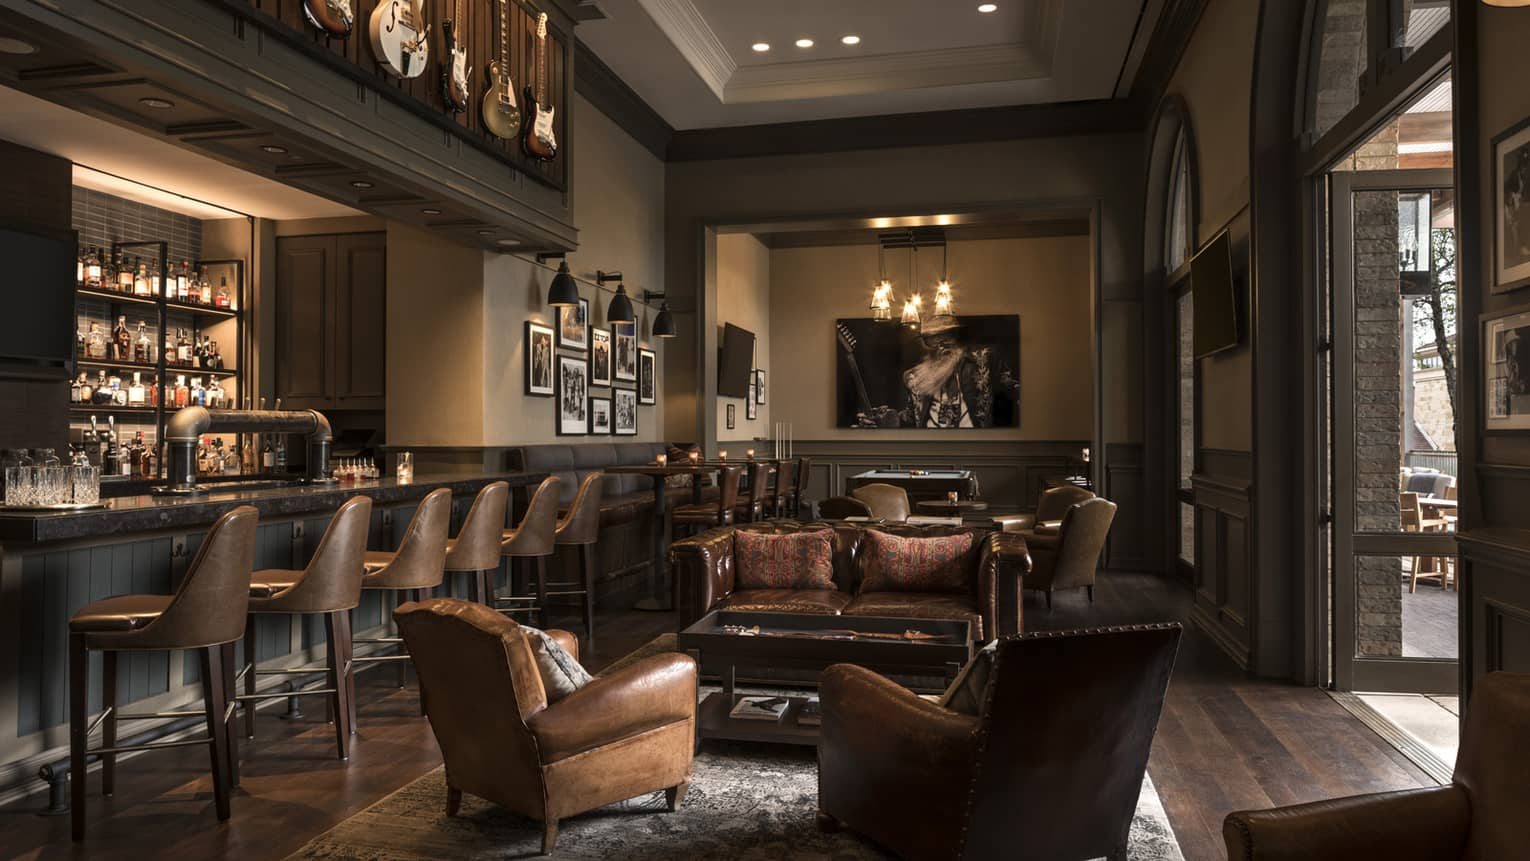 Indoor bar area, with dark wood floors, dark leather chairs and a bar counter